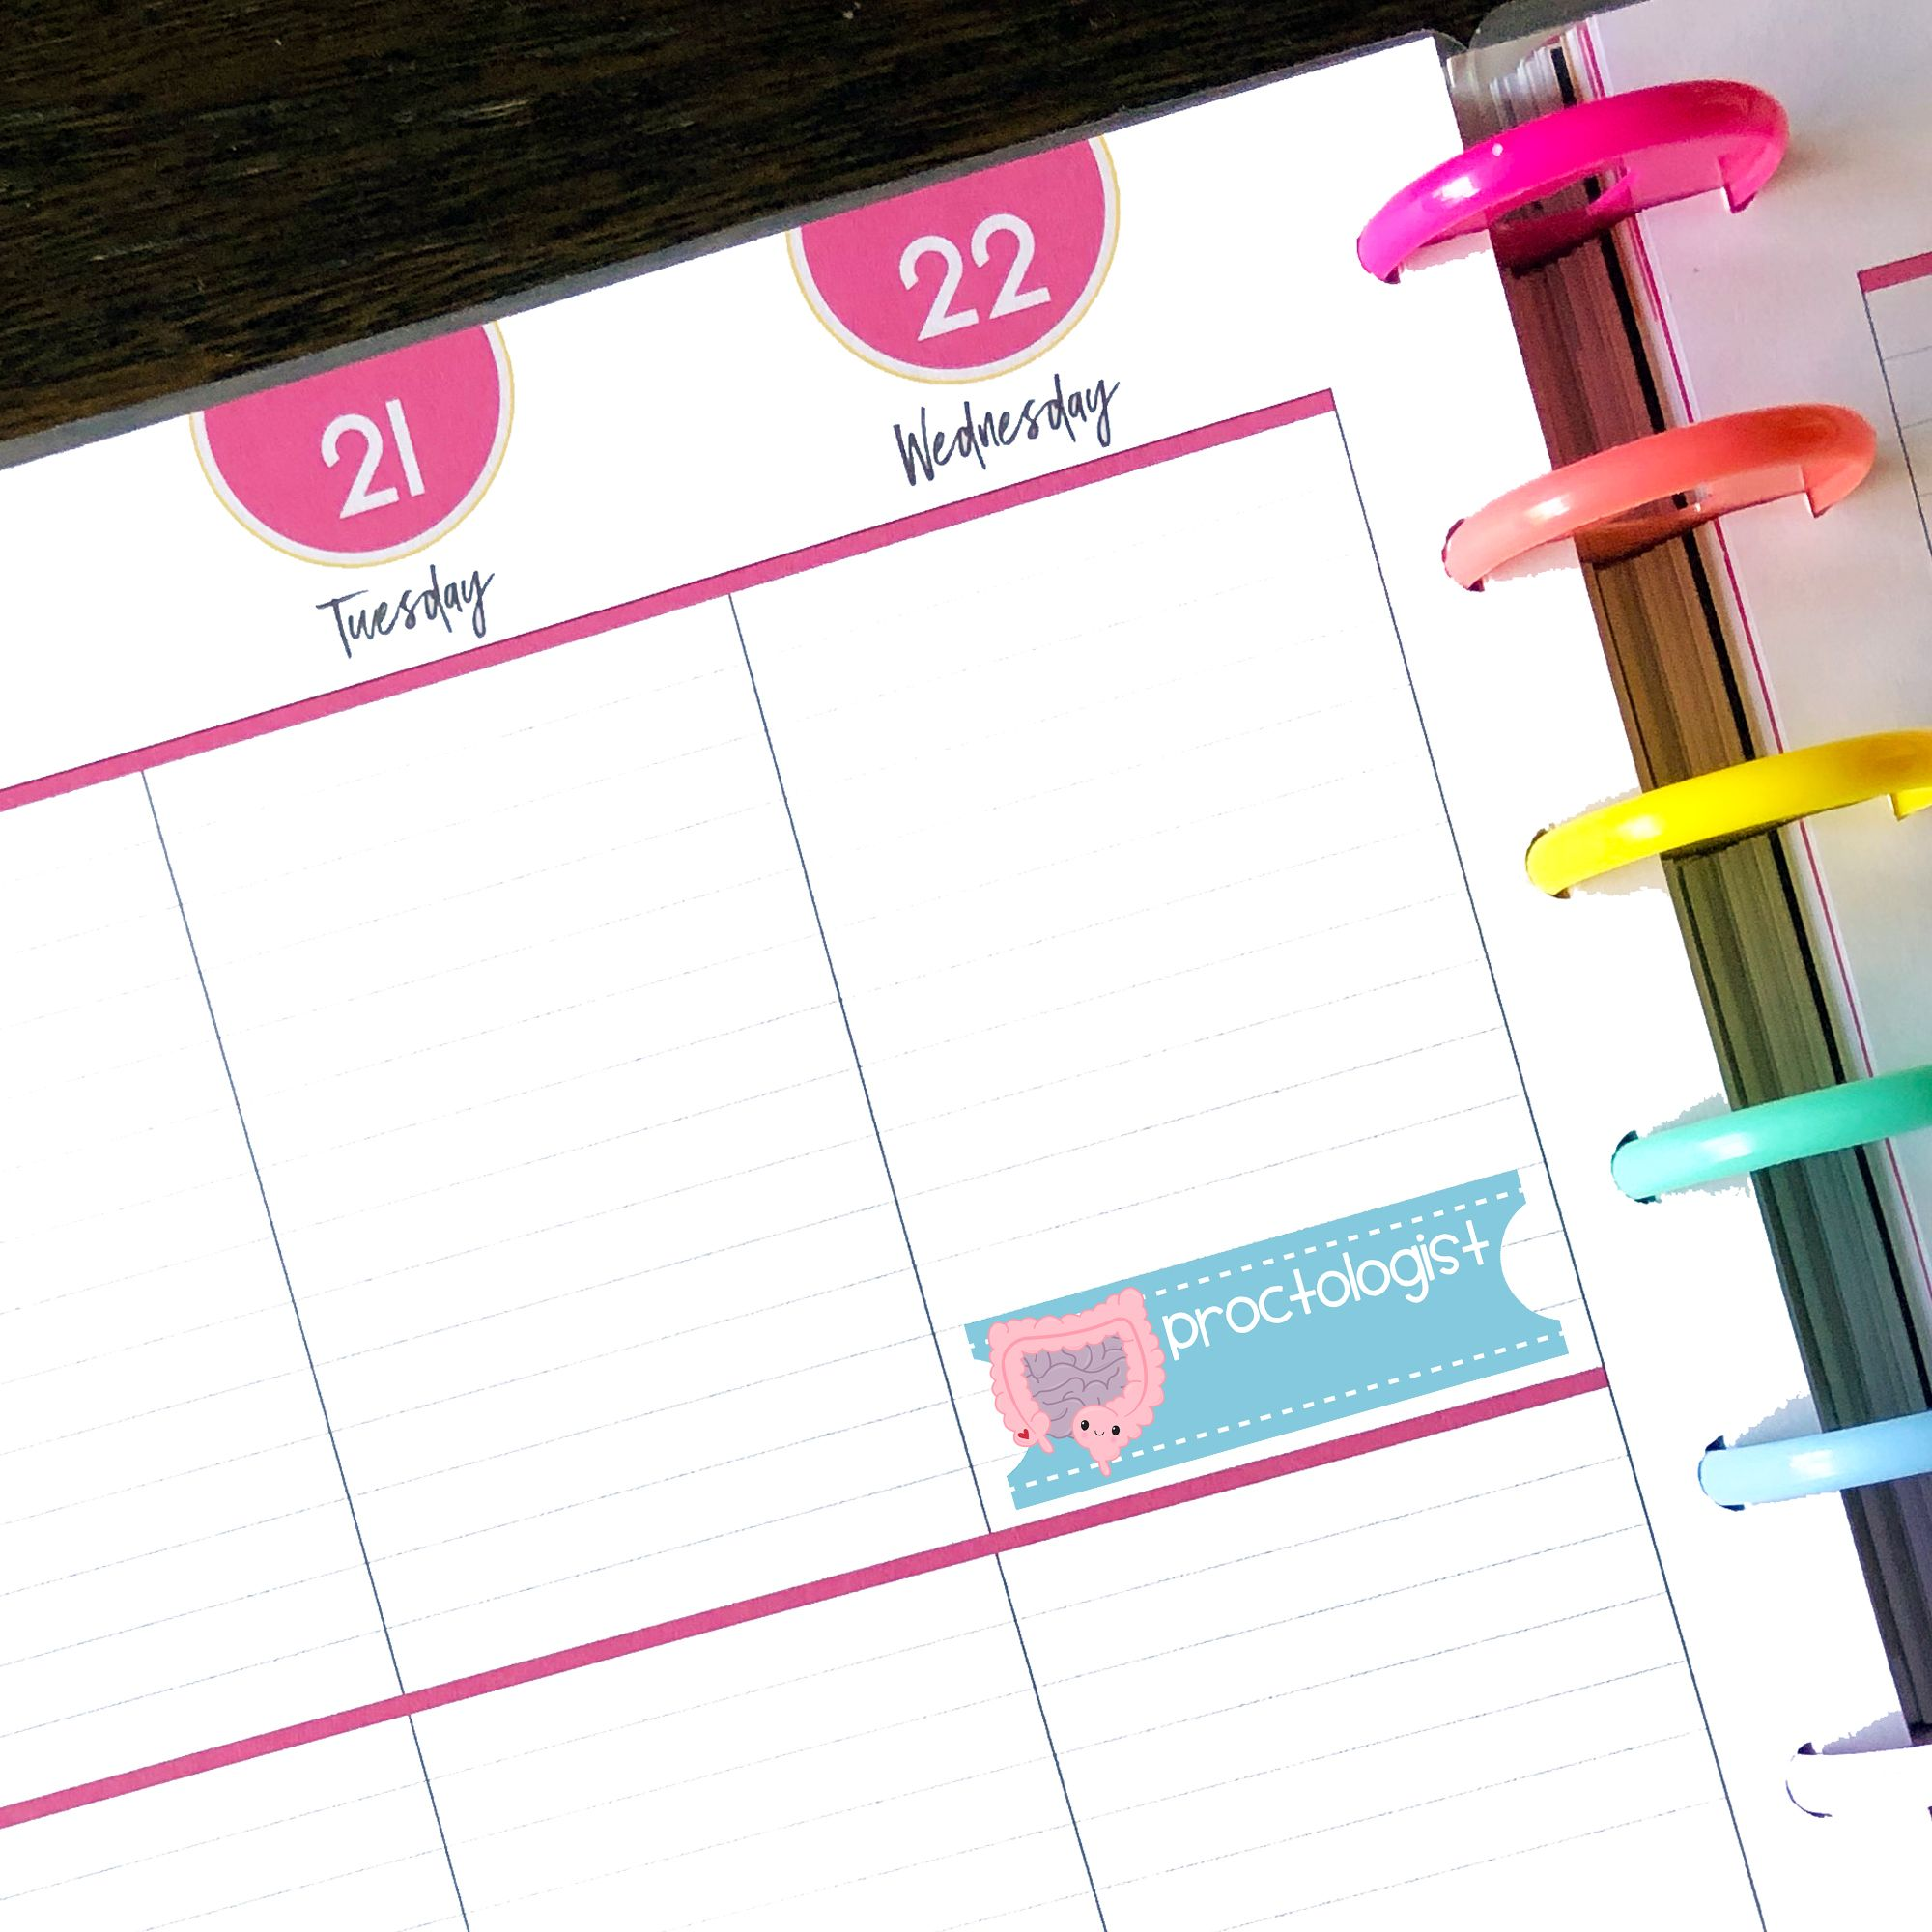 Proctologist Appointment Planner Stickers PRINTABLE